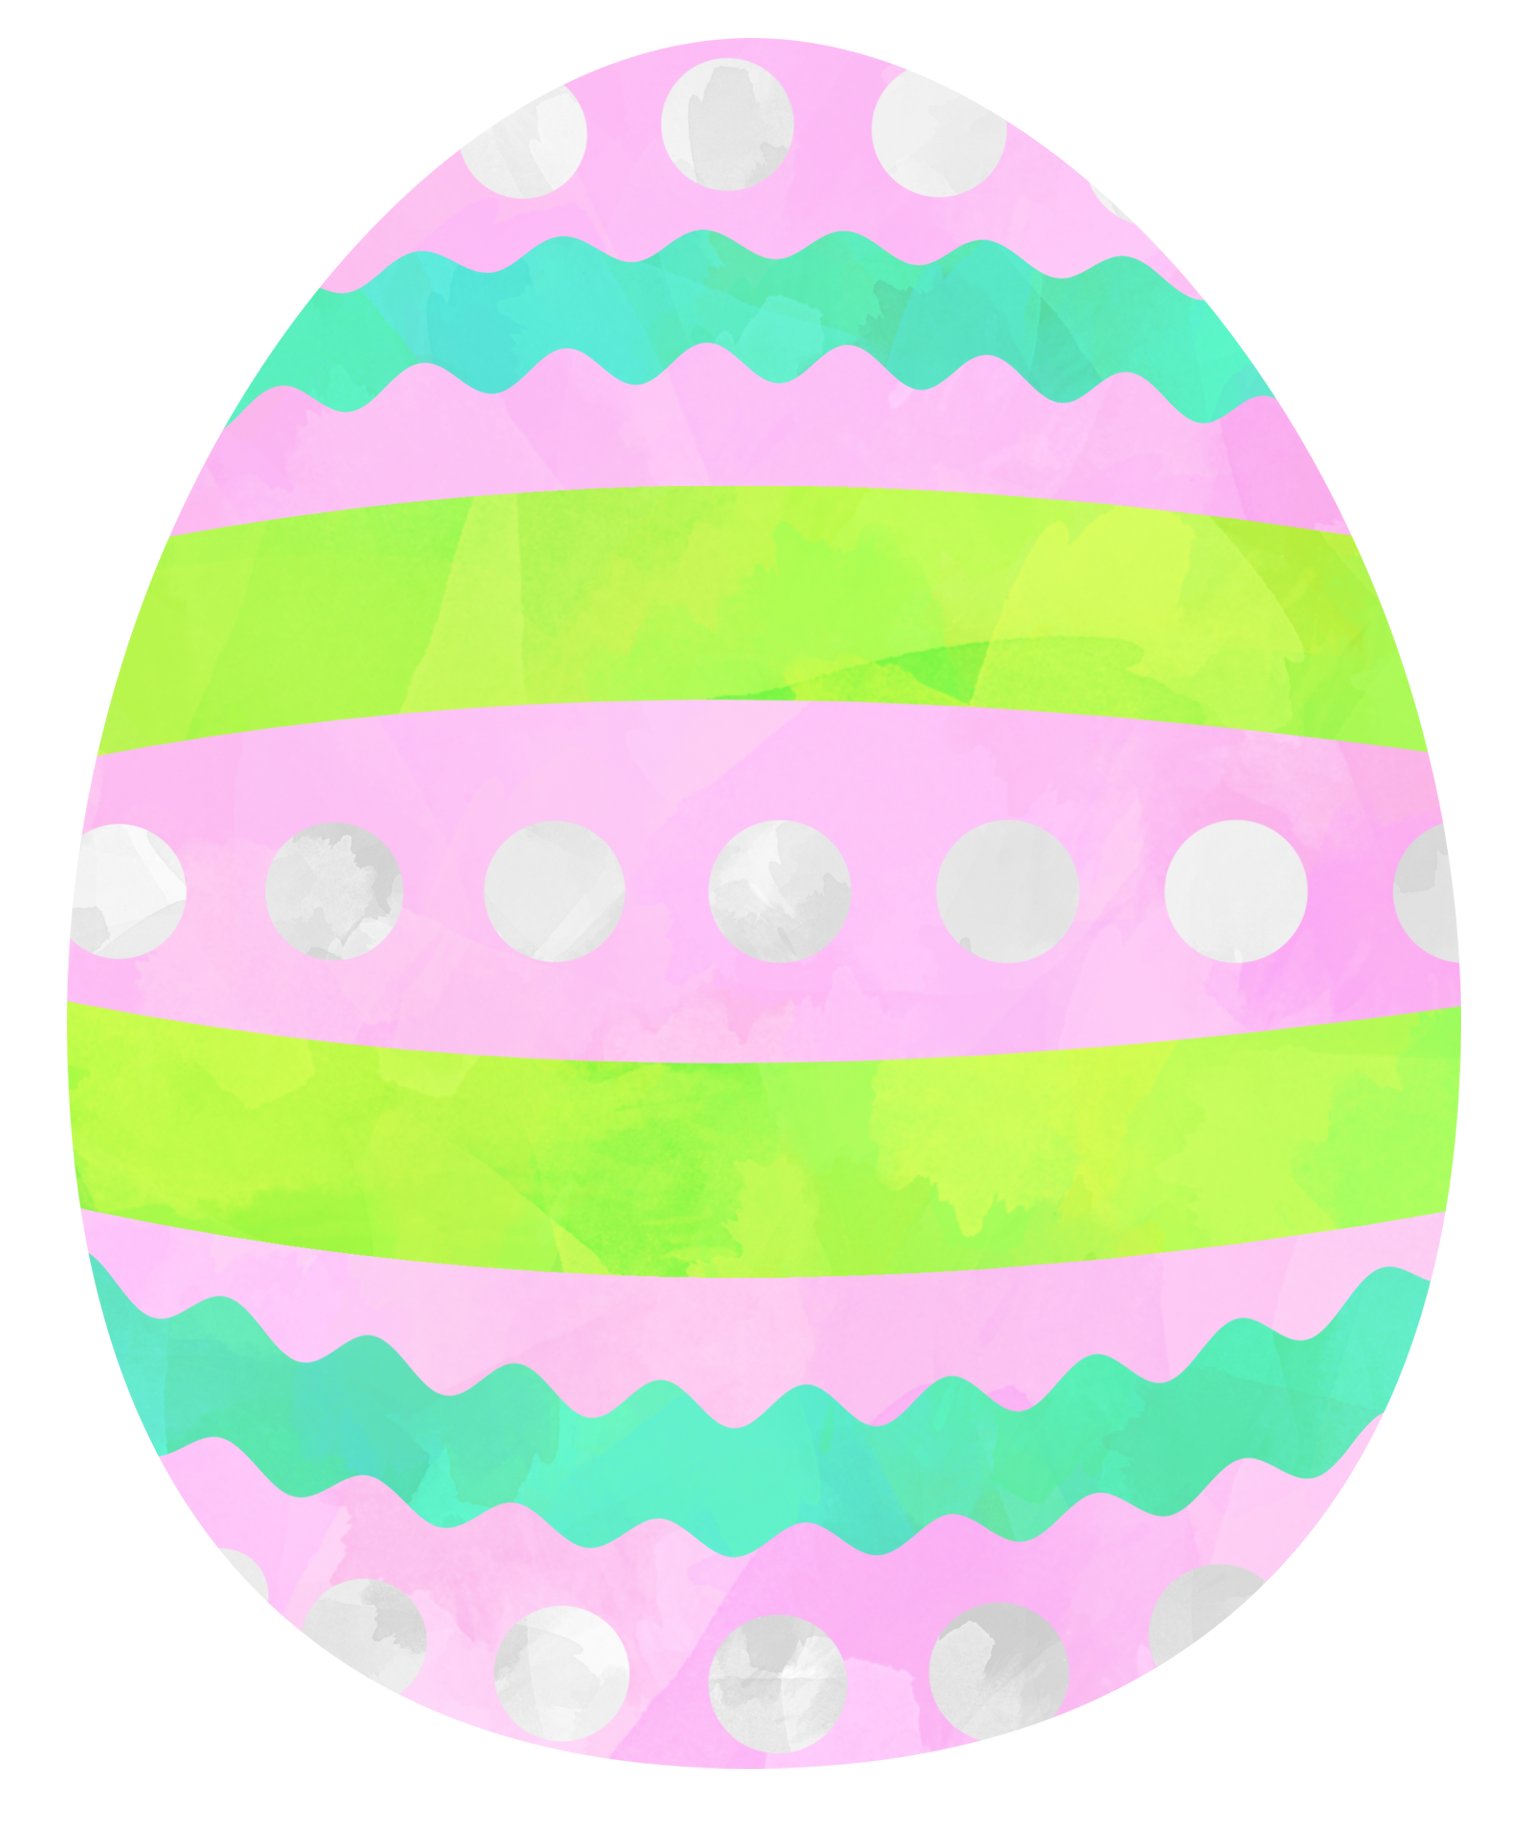 Easter Egg. Colored watercolor clipart